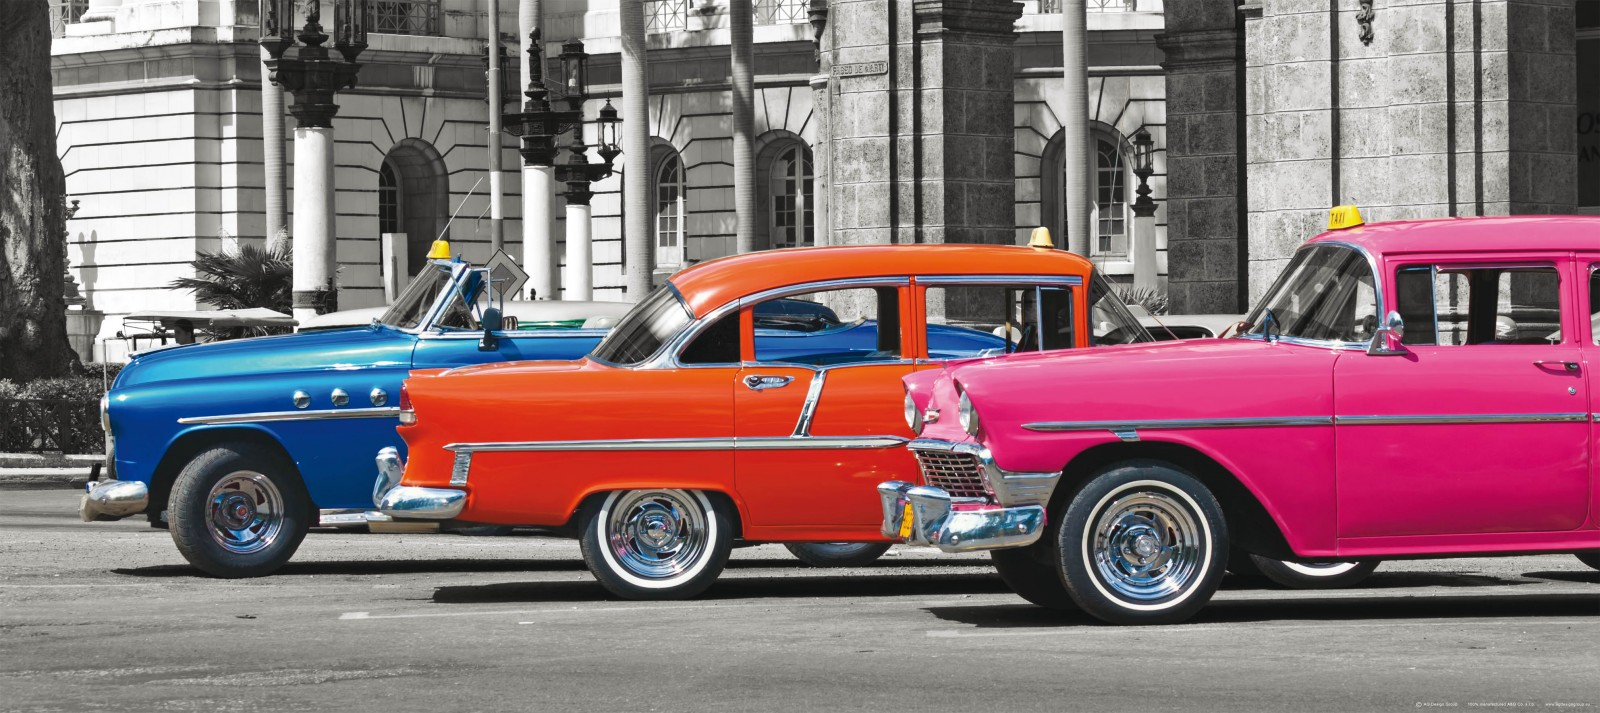 Wall mural wallpaper cars oldtimer blue orange pink photo for Car wallpaper mural